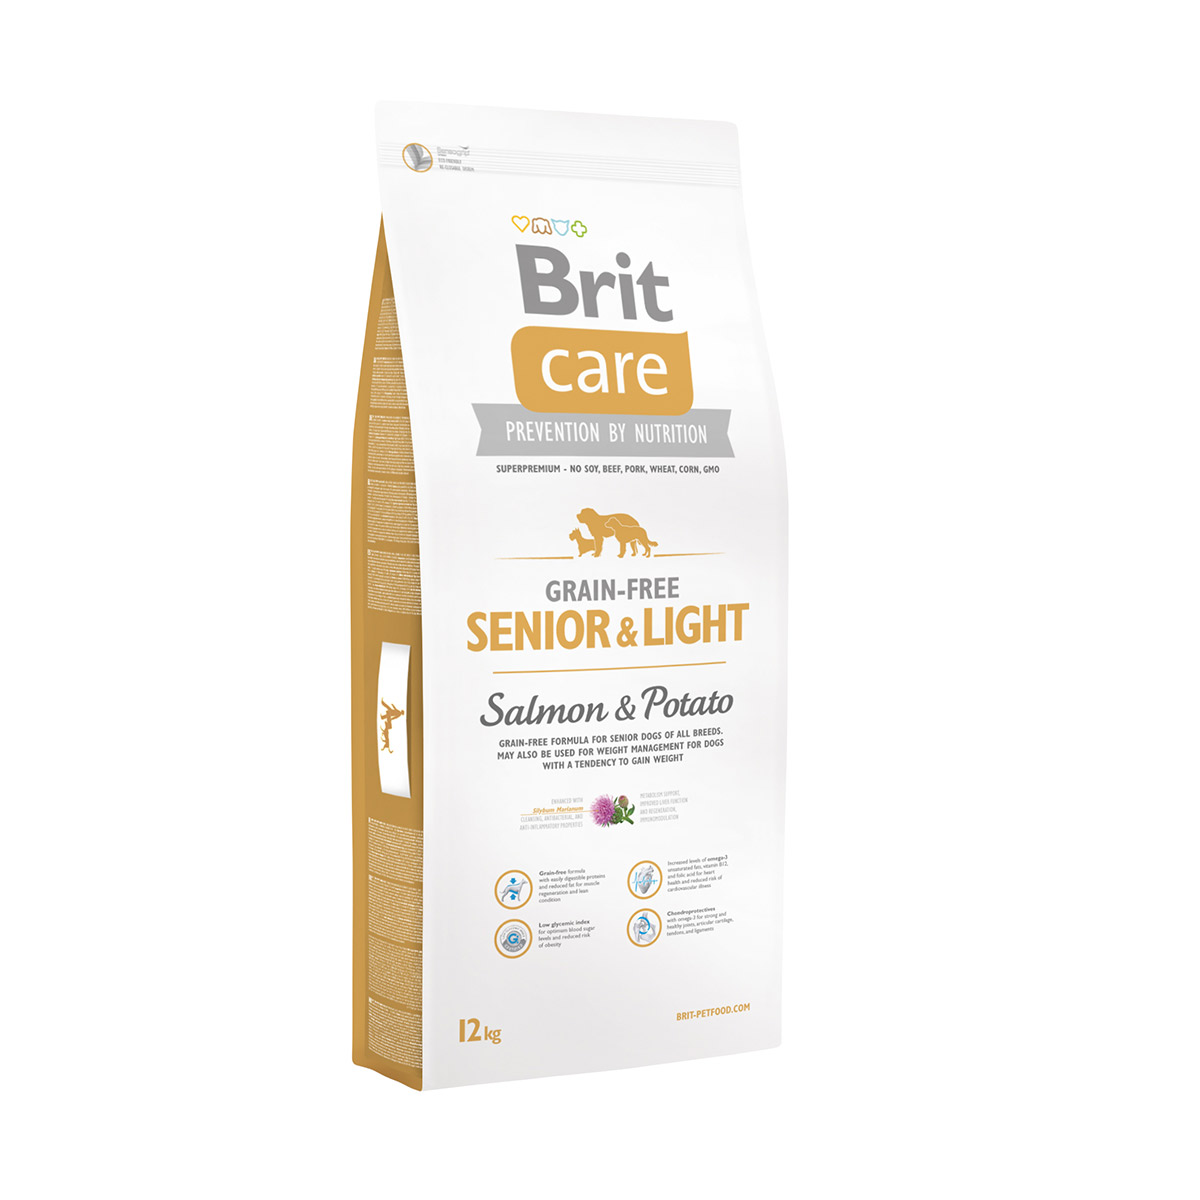 Brit Care Dog Grain-free Senior & Light Salmon & Potato 2x12kg von Brit